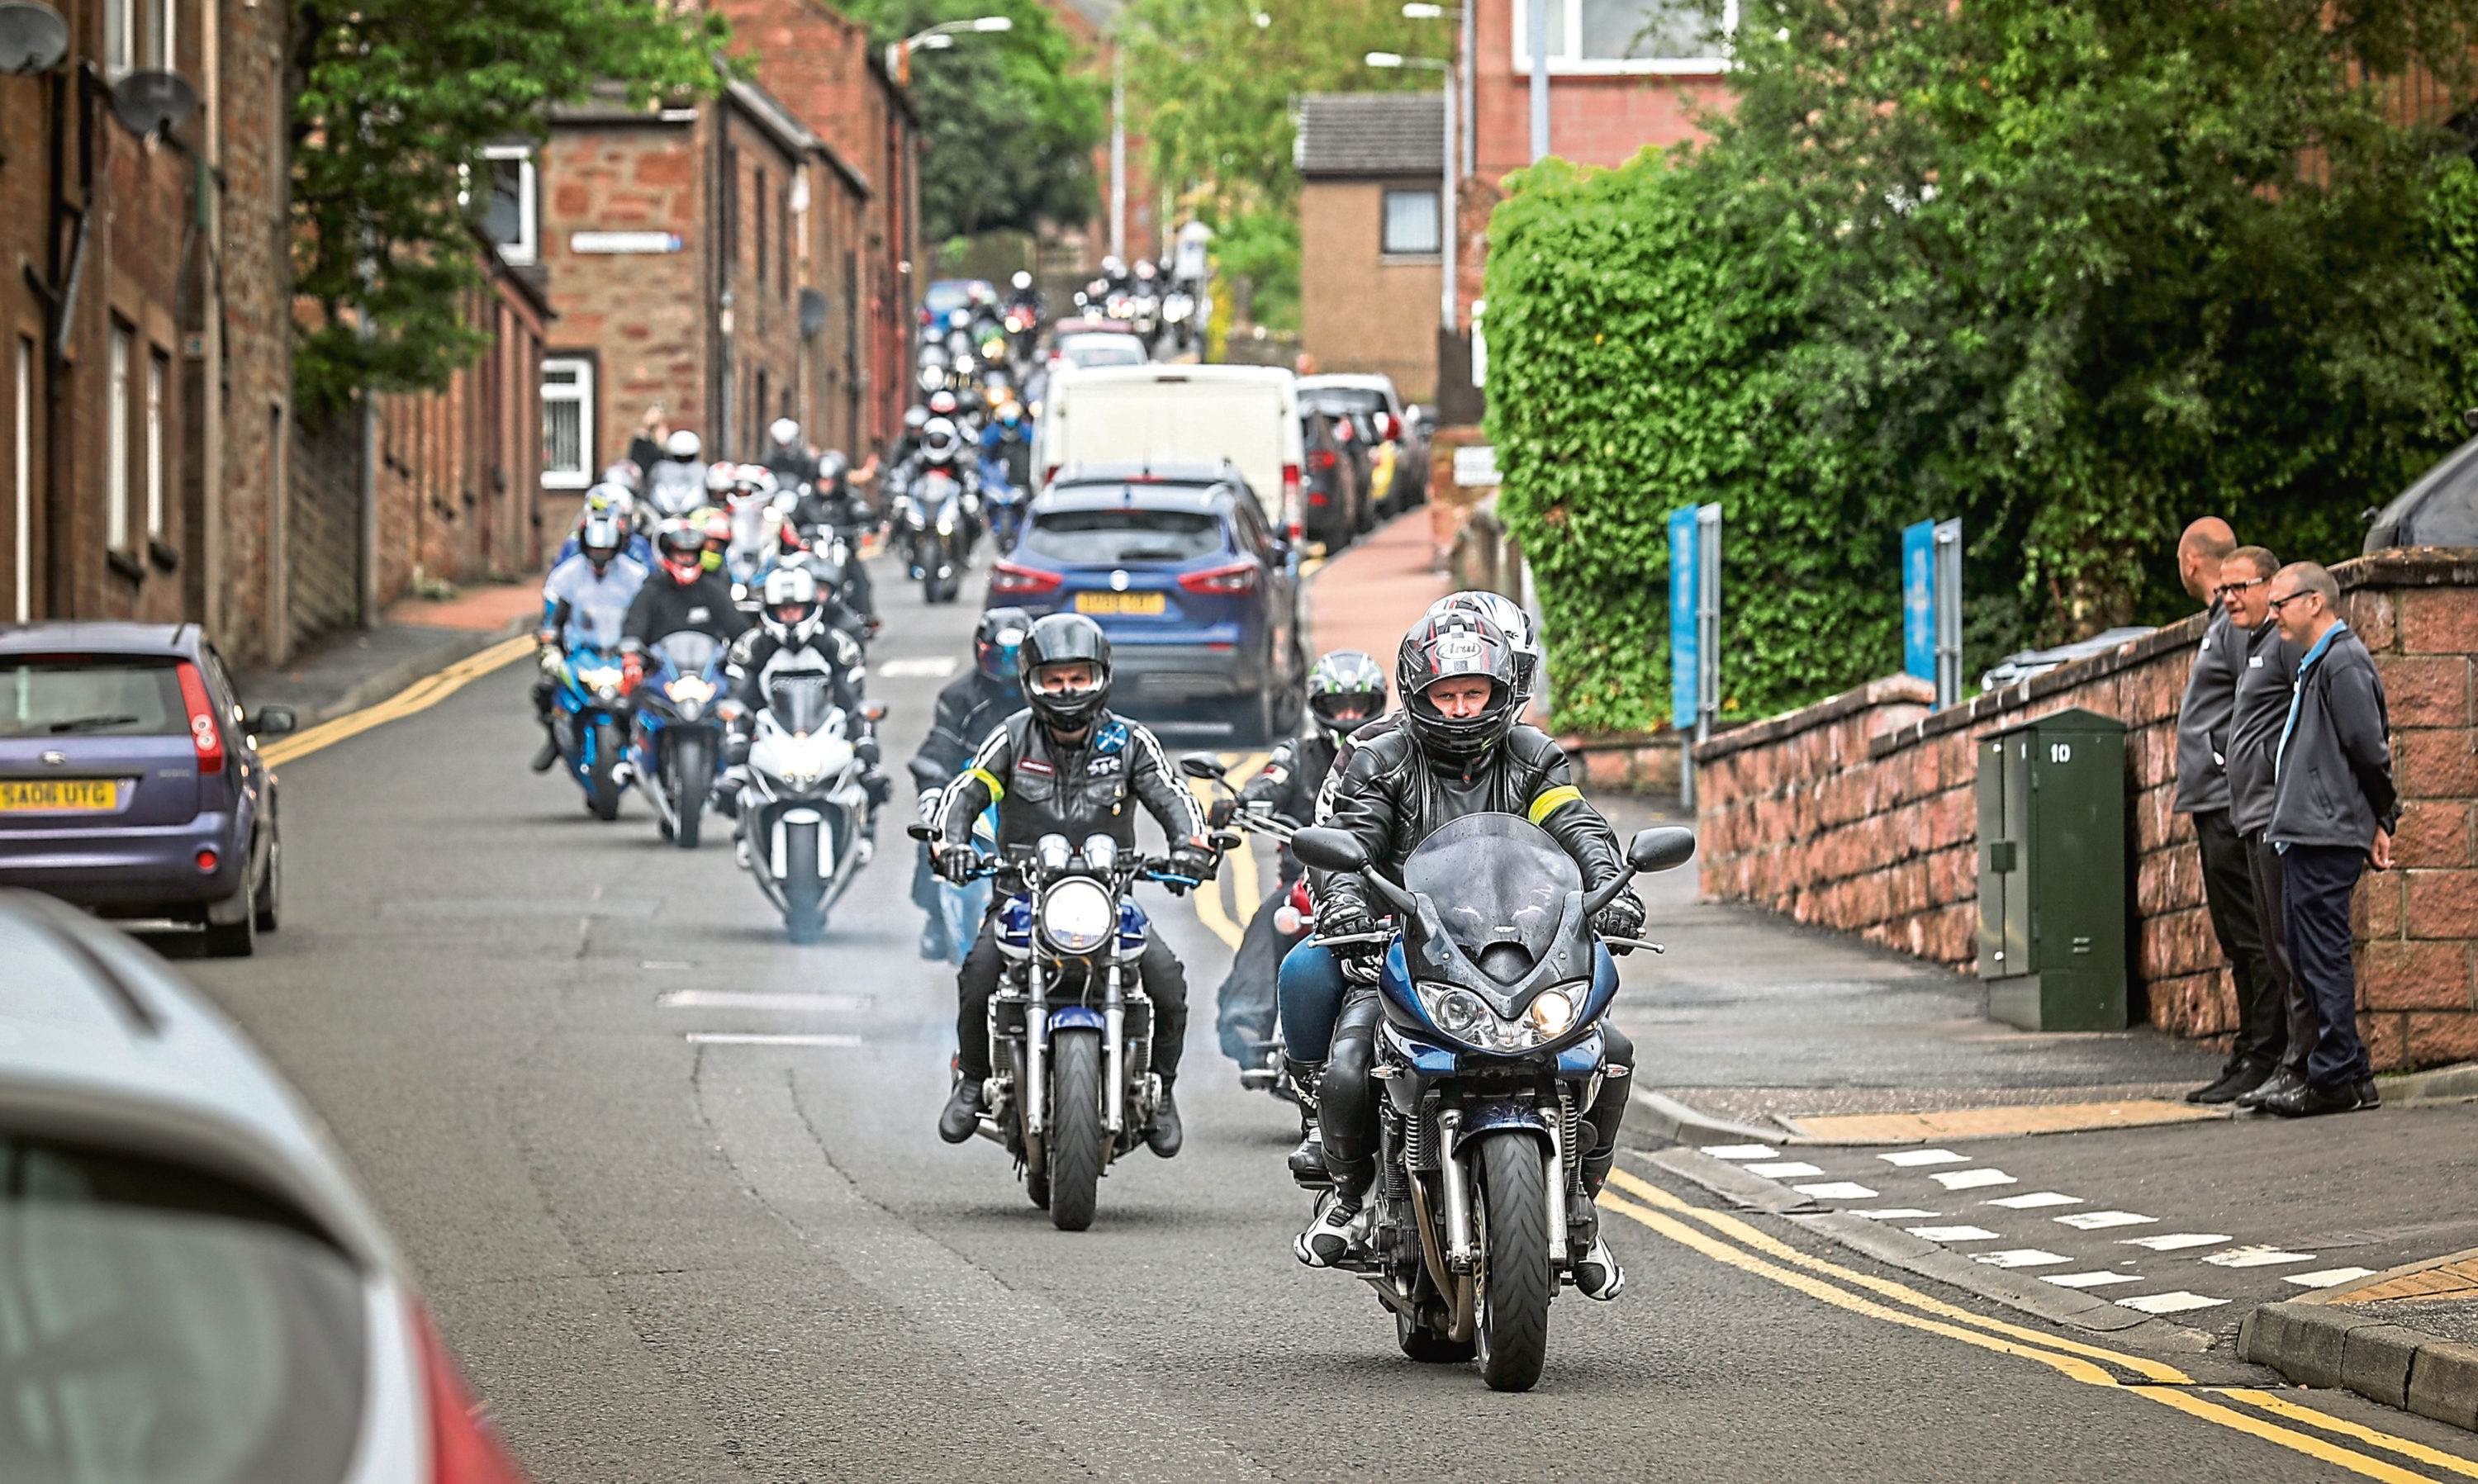 Hundreds of bikers, Steven's family and friends turned out for the memorial event.